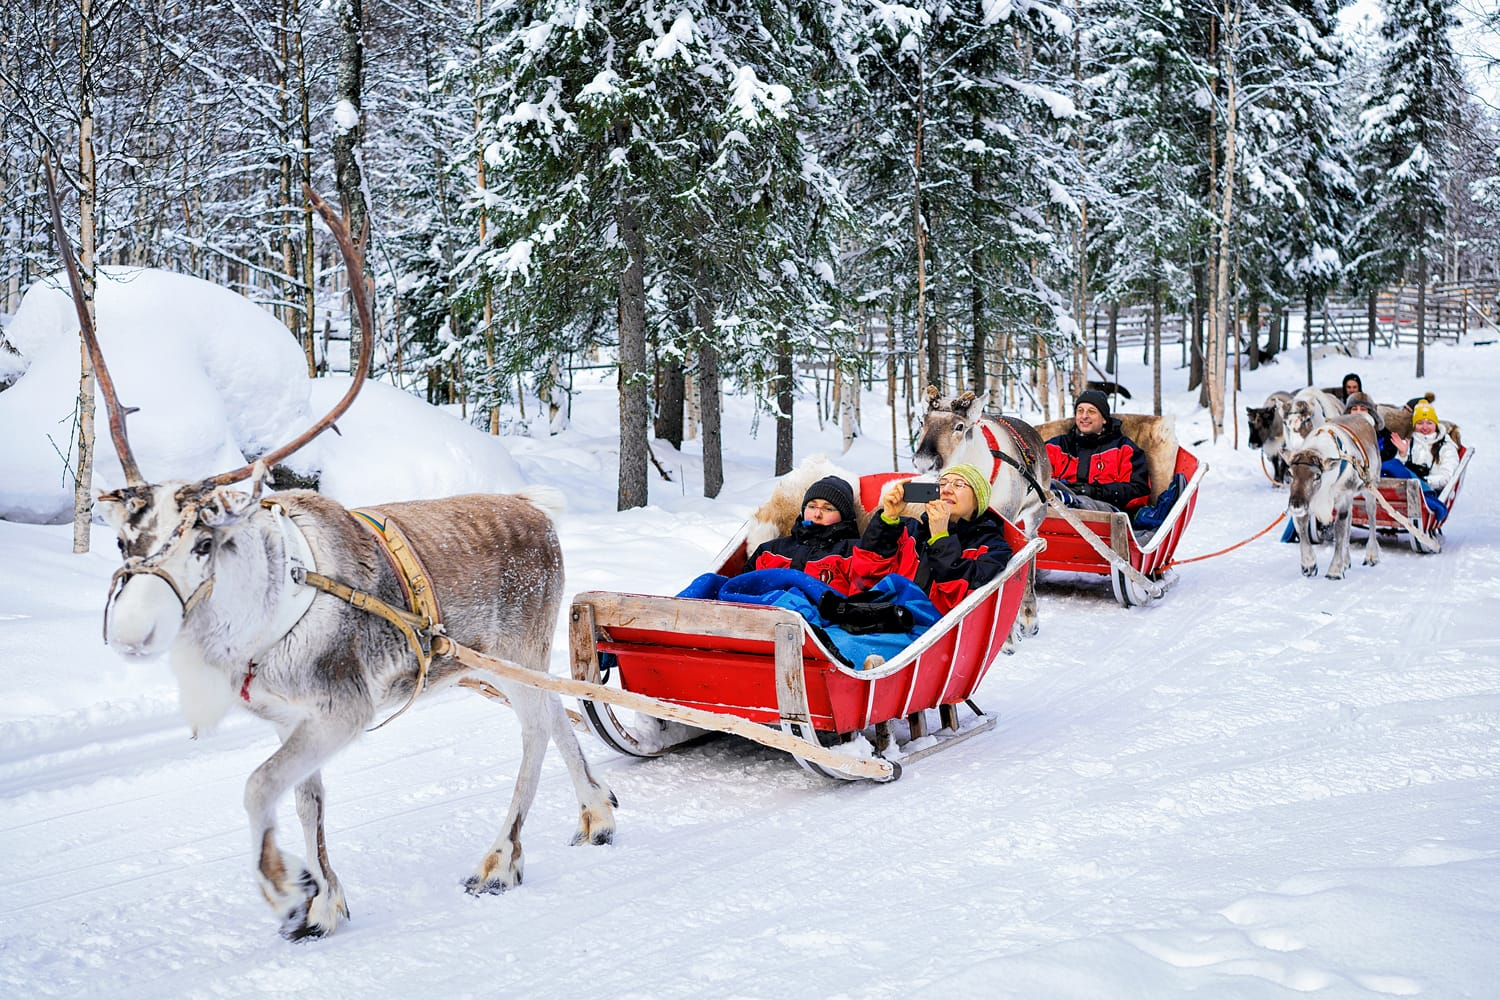 People in Reindeer sledge caravan safari in winter forest in Rovaniemi, Lapland, Finland